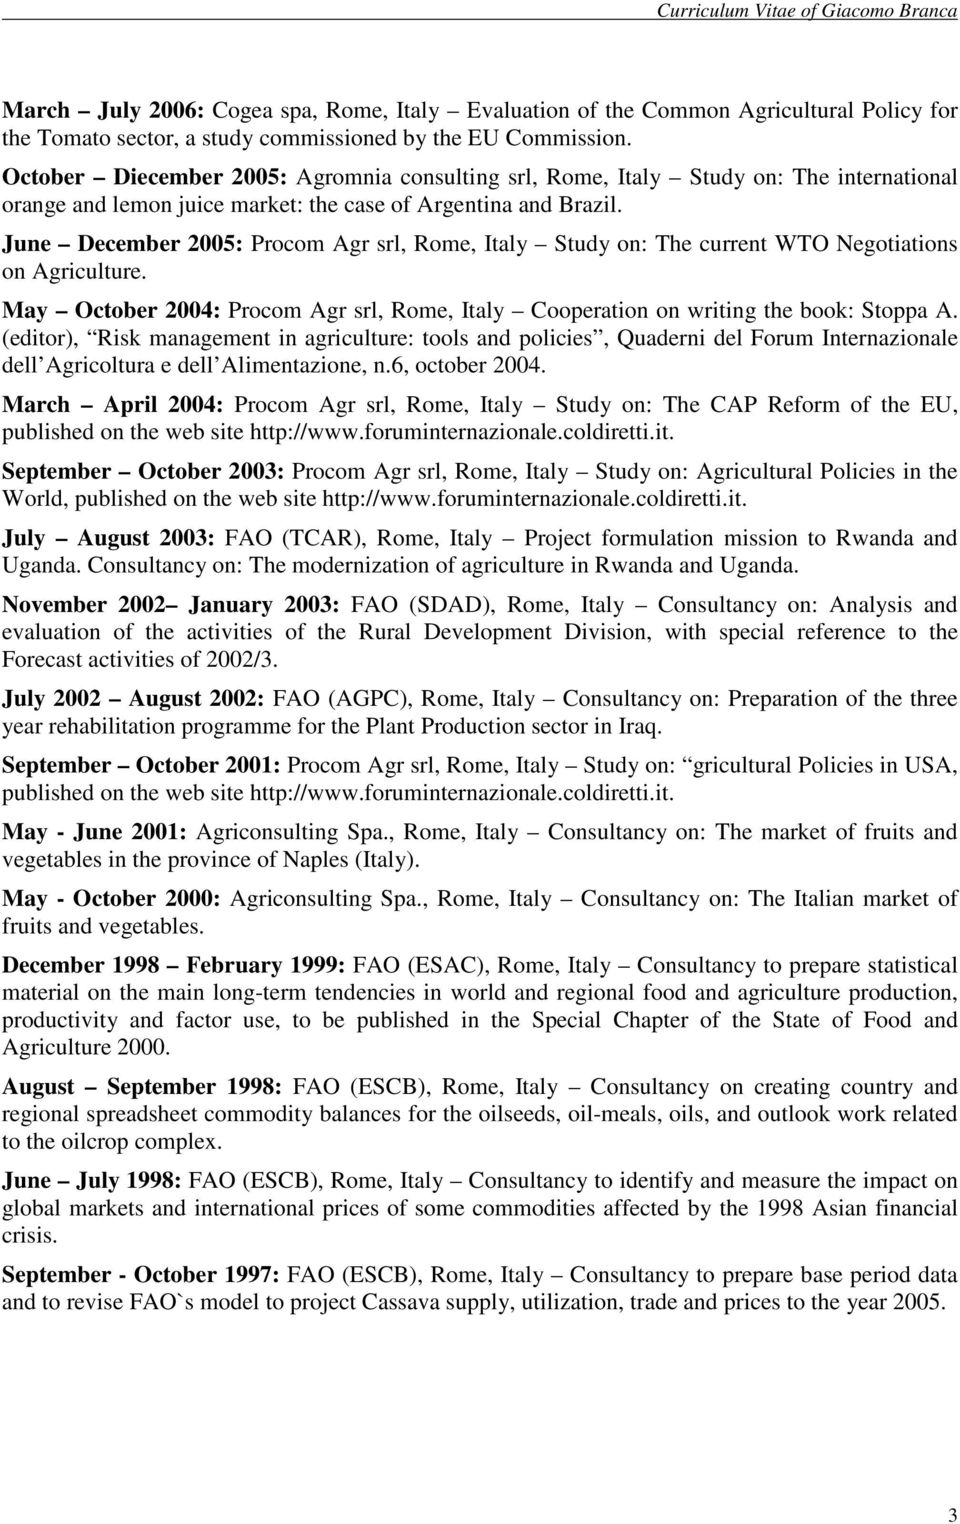 June December 2005: Procom Agr srl, Rome, Italy Study on: The current WTO Negotiations on Agriculture. May October 2004: Procom Agr srl, Rome, Italy Cooperation on writing the book: Stoppa A.